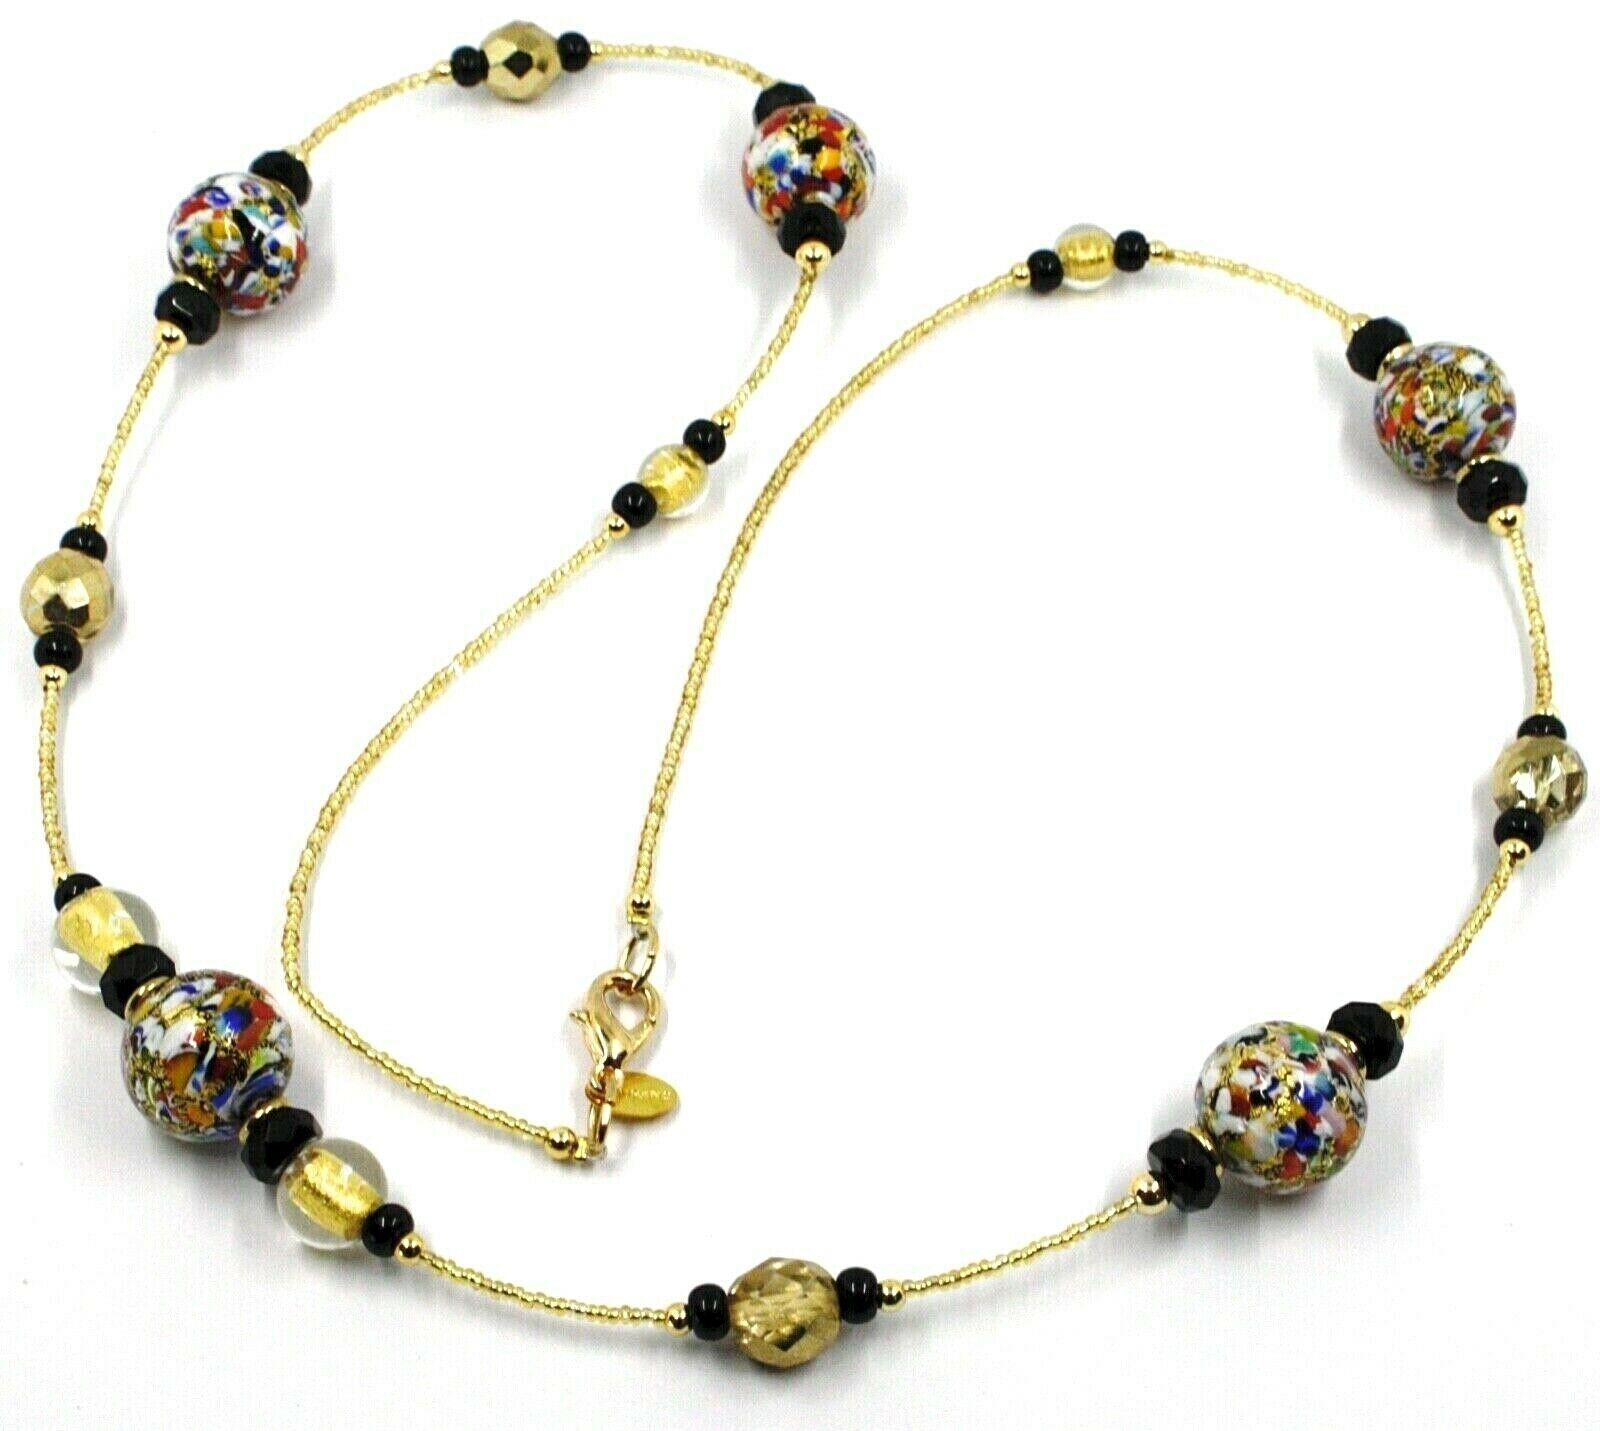 NECKLACE MACULATE LONG MULTI COLOR MURANO GLASS SPHERE, GOLD LEAF, ITALY MADE